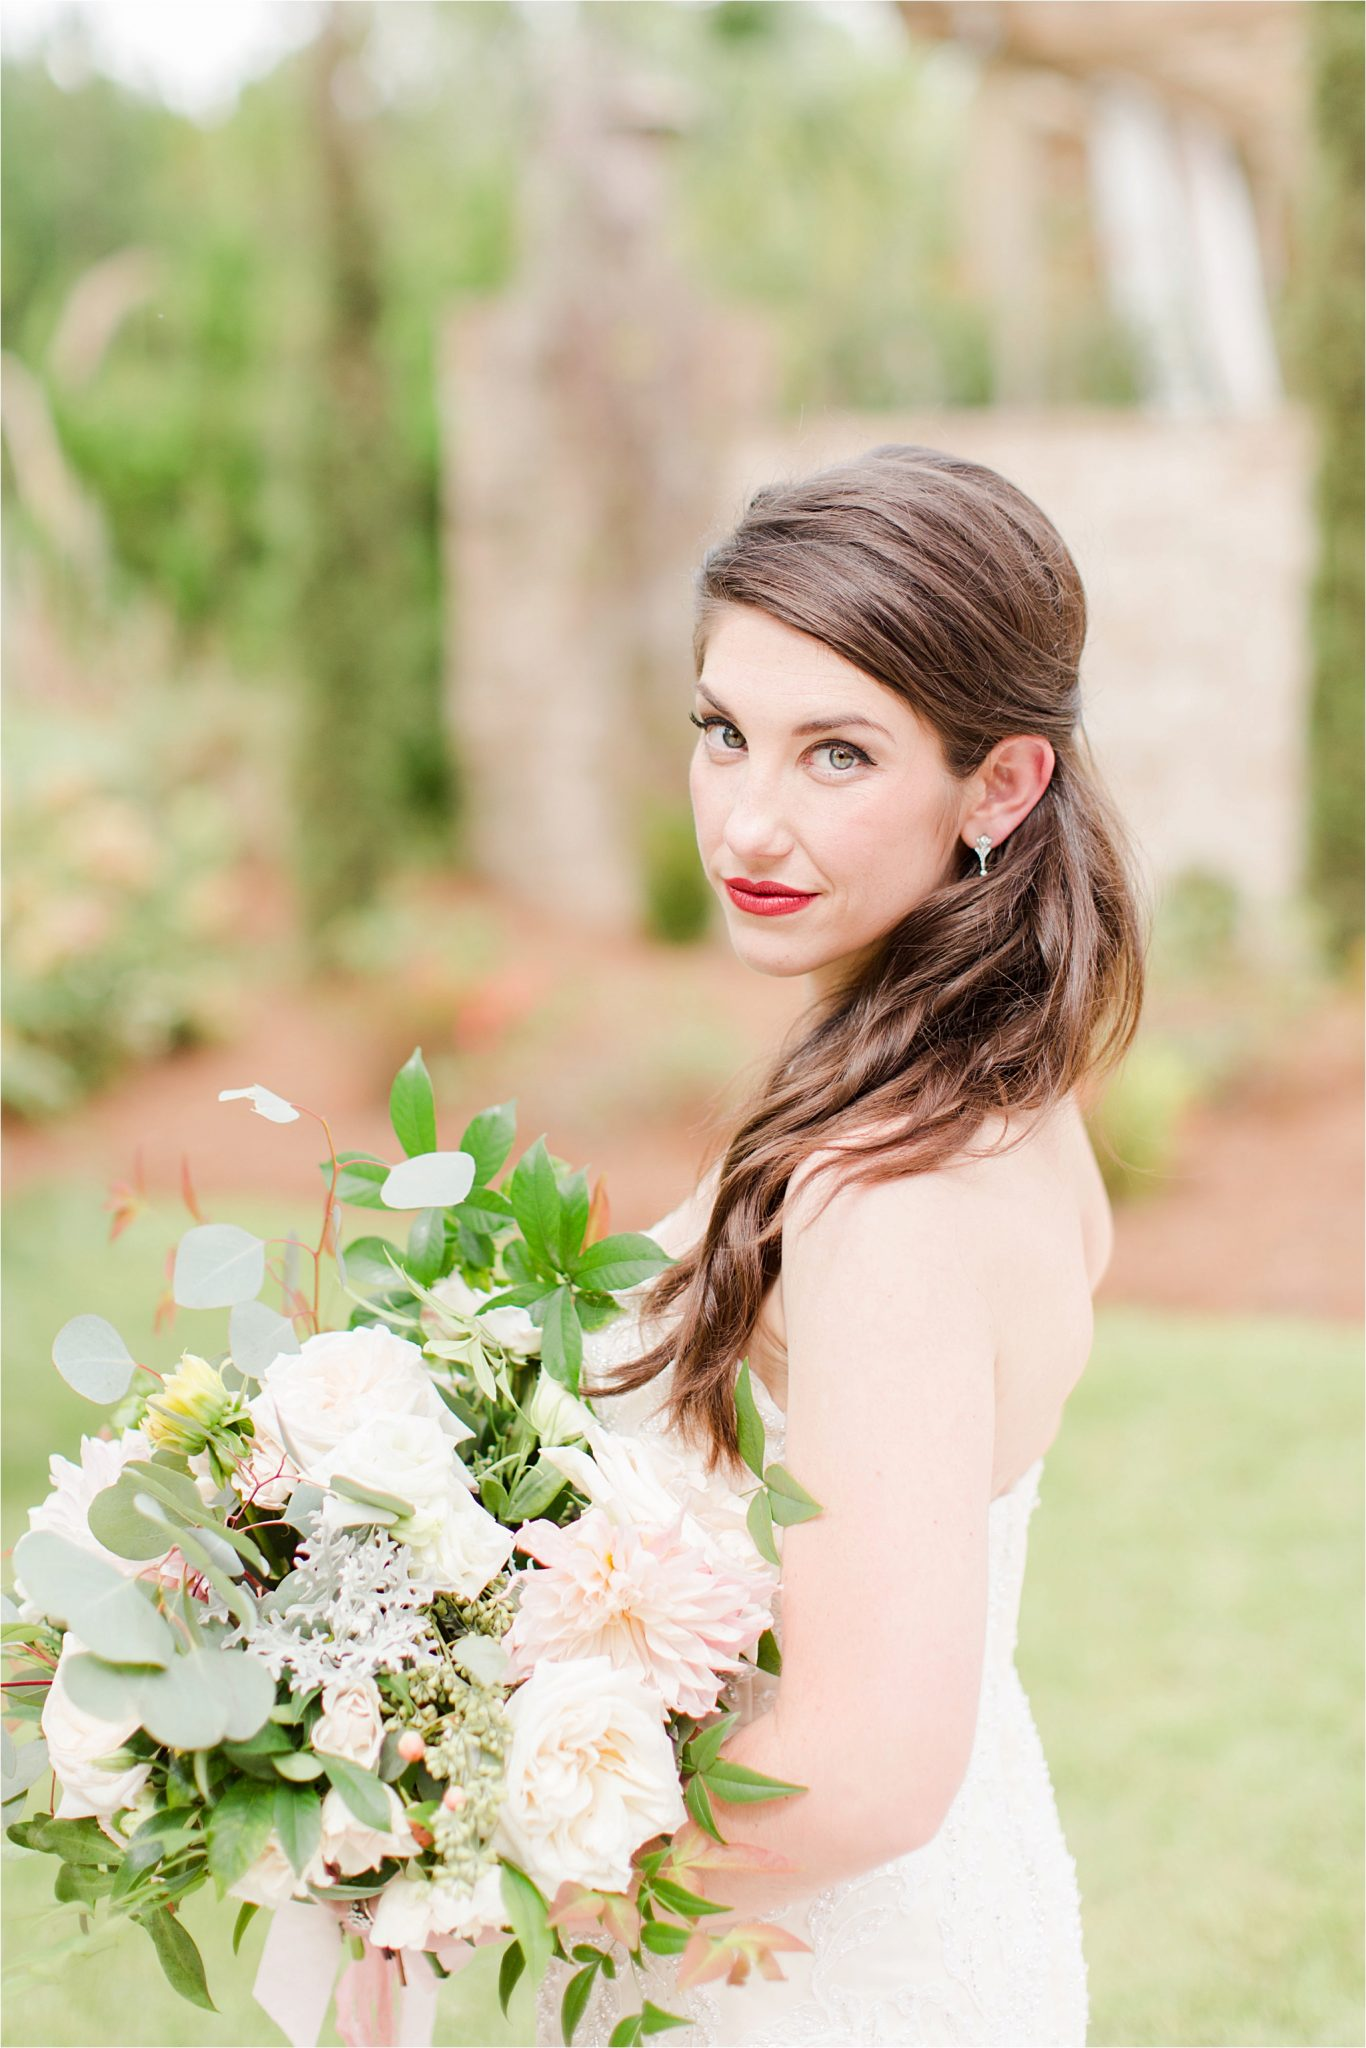 Bridal portraits-photos of the bride-wedding day-red lip-bright lip-alabama wedding photographer